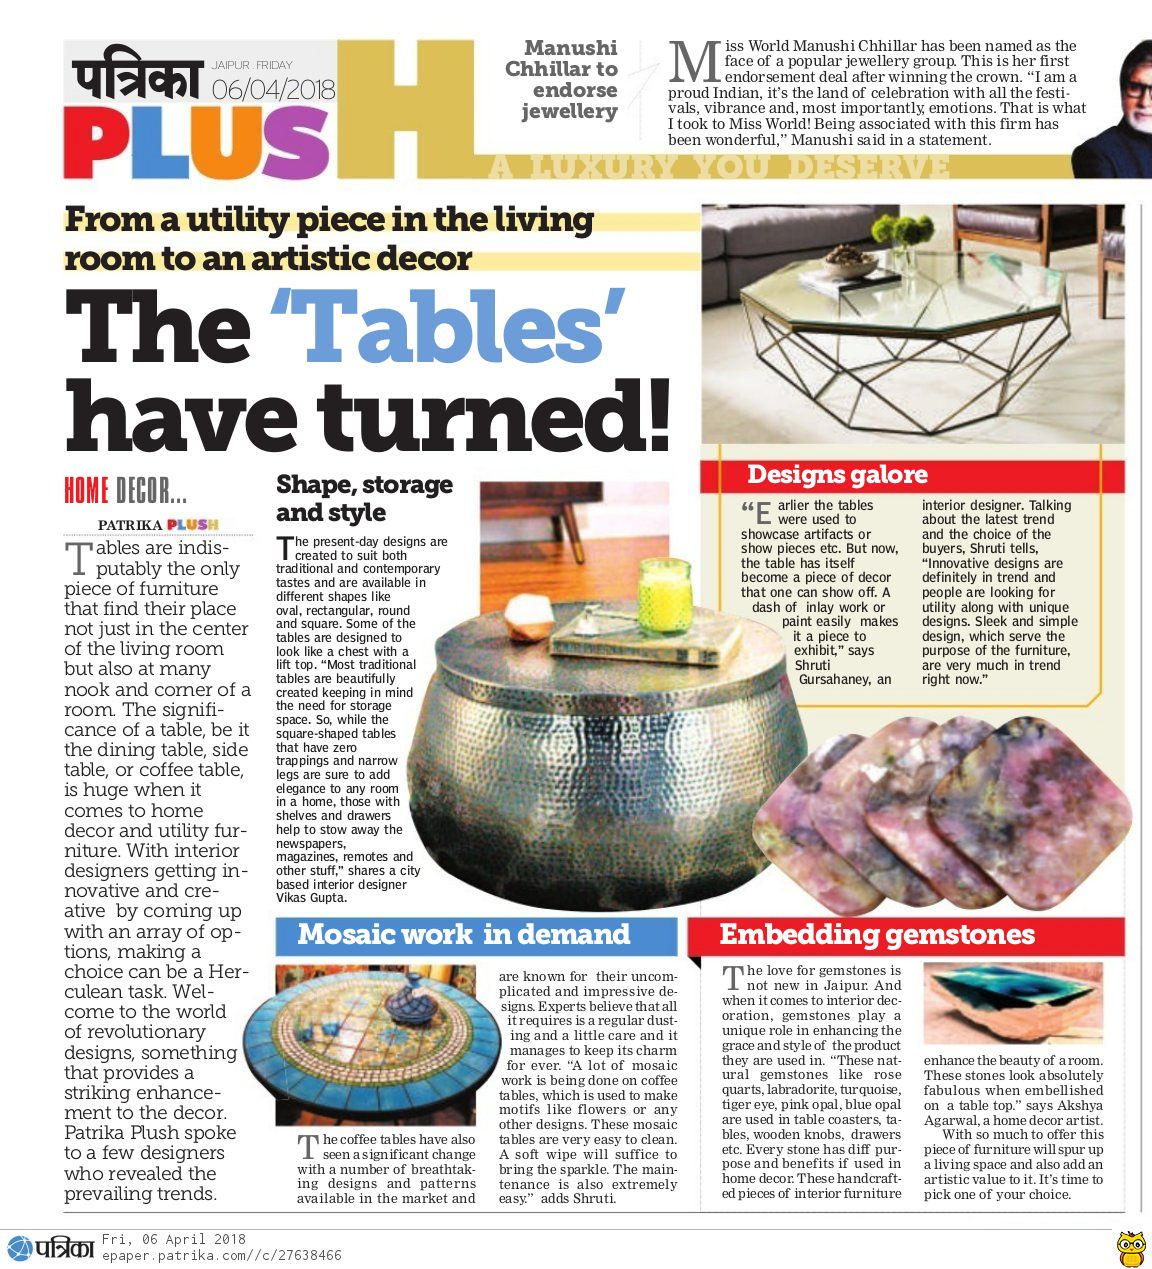 Gemstone Coasters: Patrika Plus